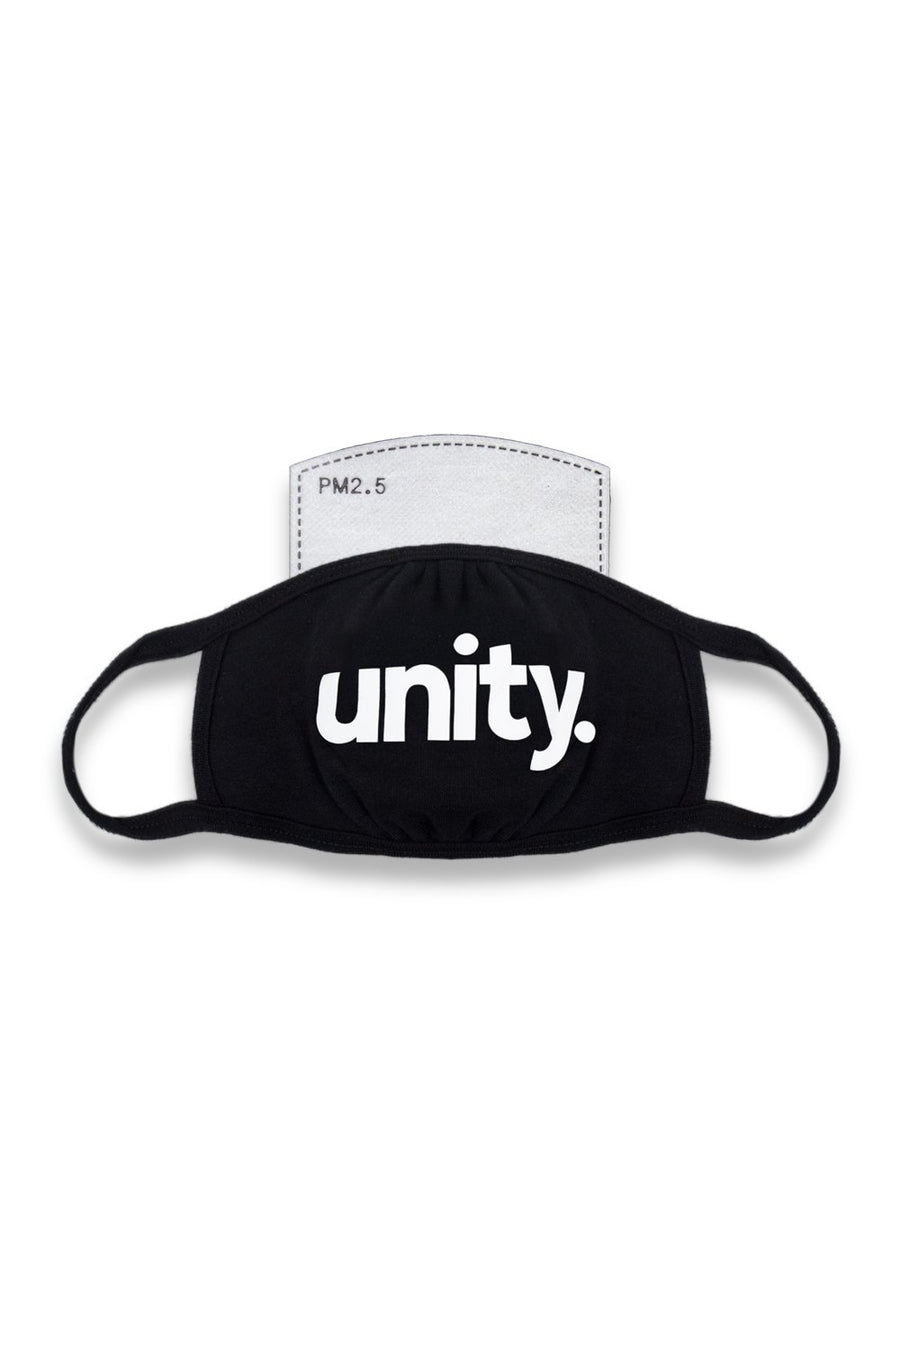 Unity Mask Black/White